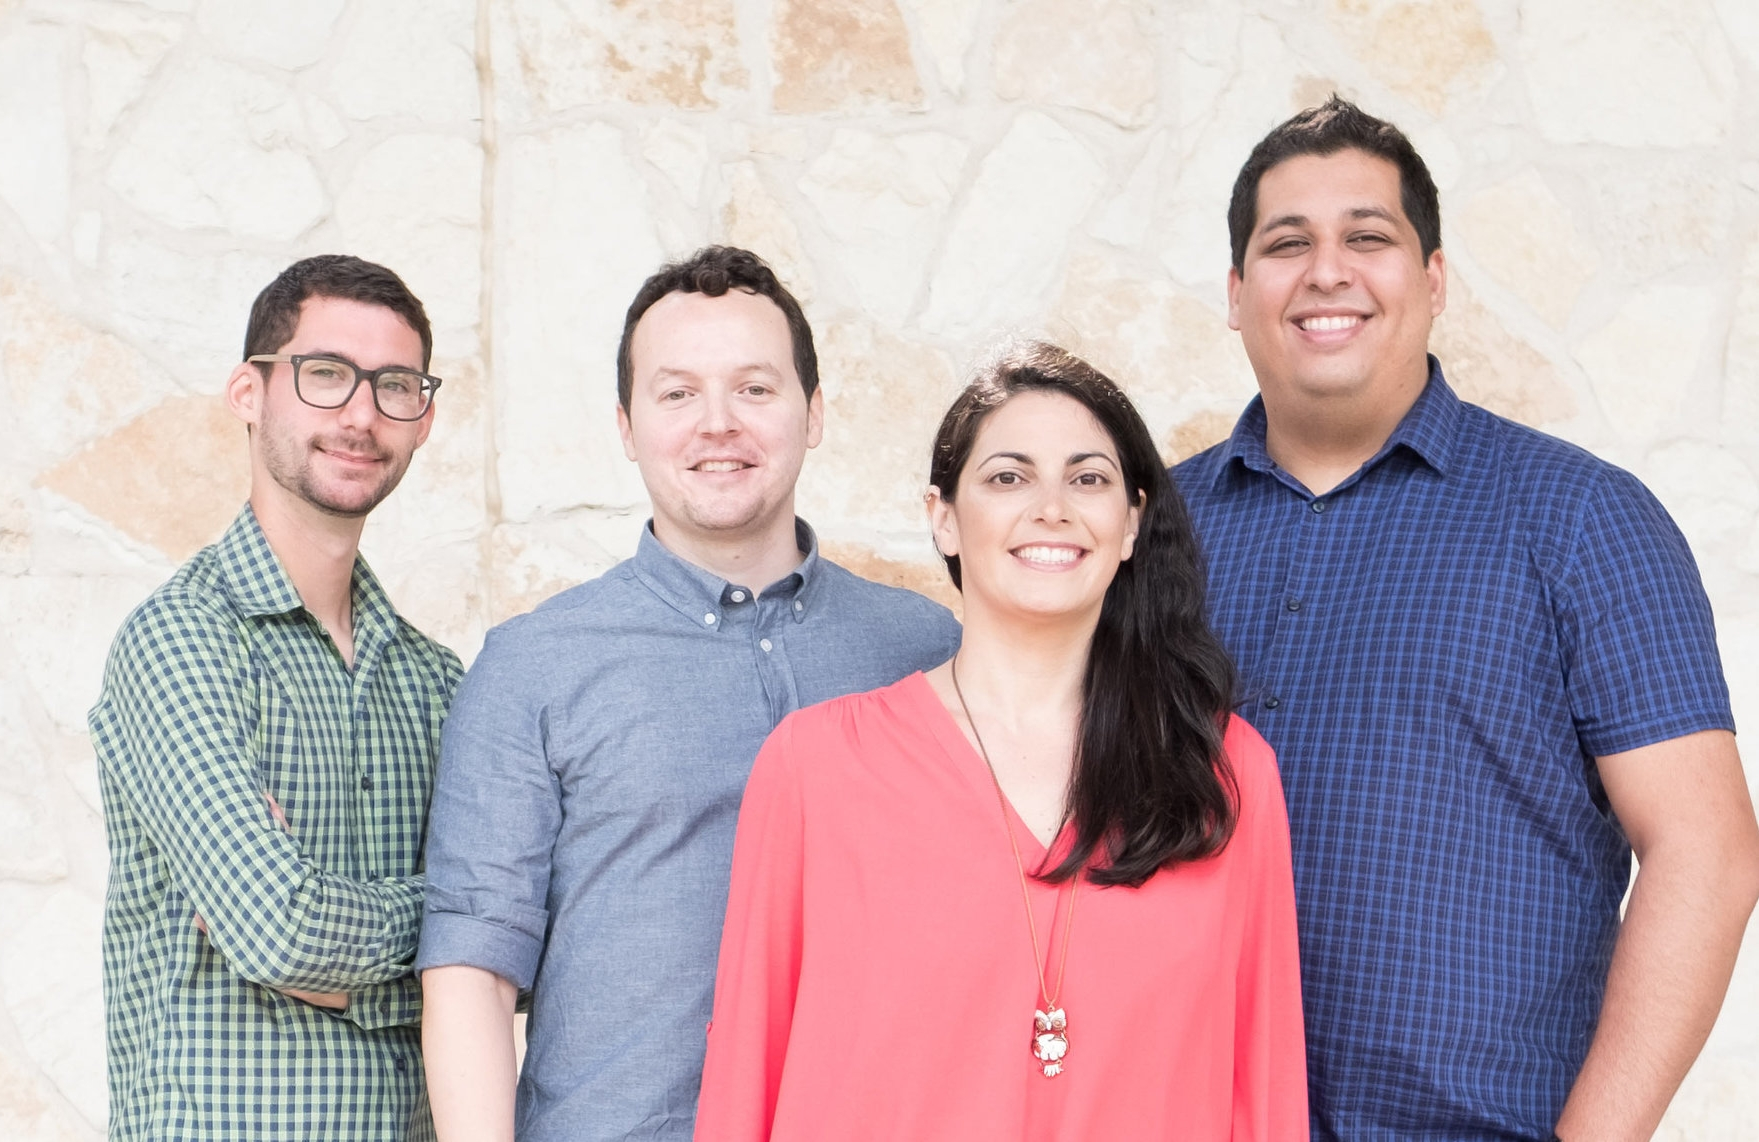 The Appyness Team - mobile app marketing and digital marketing agency